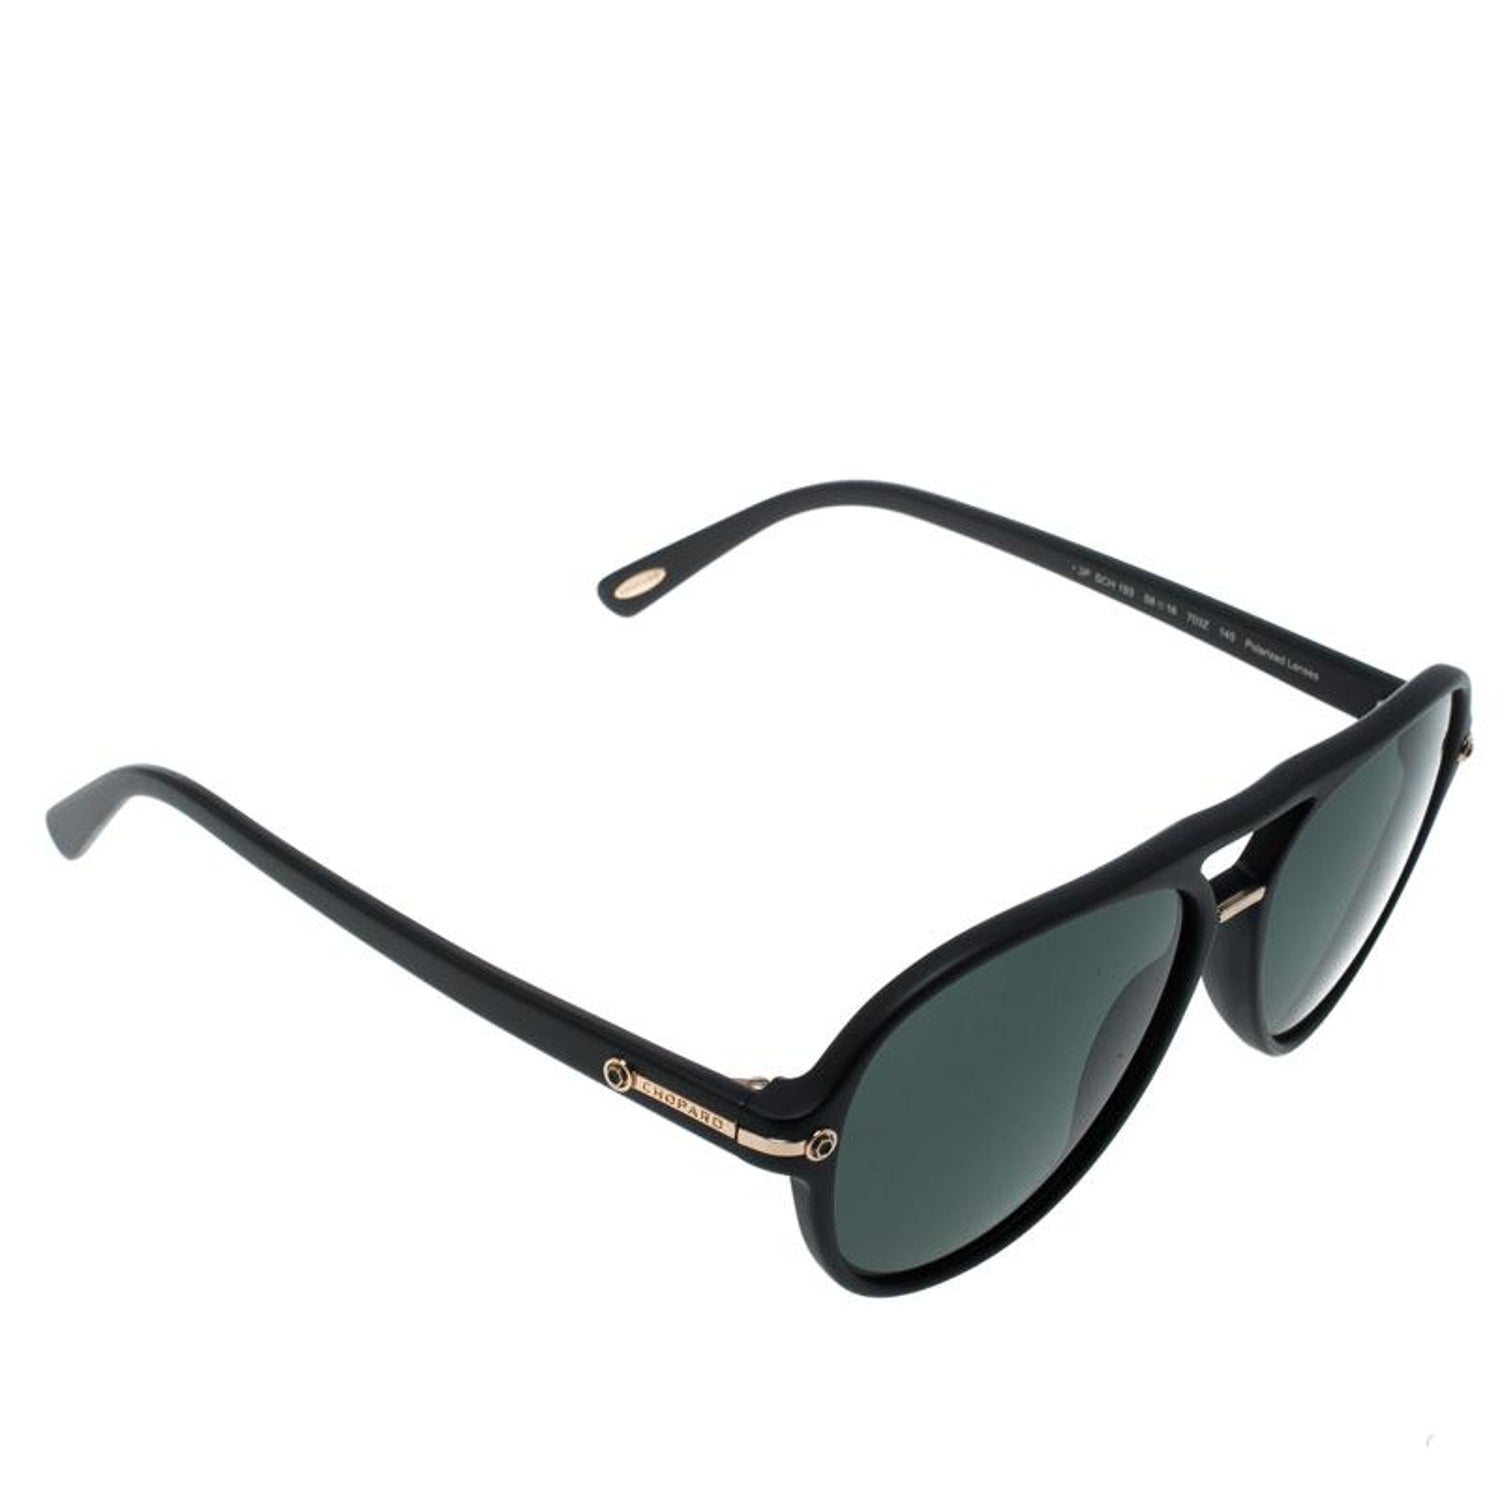 3805bfd838 Chopard Black Polarized SCH193 Aviator Sunglasses For Sale at 1stdibs